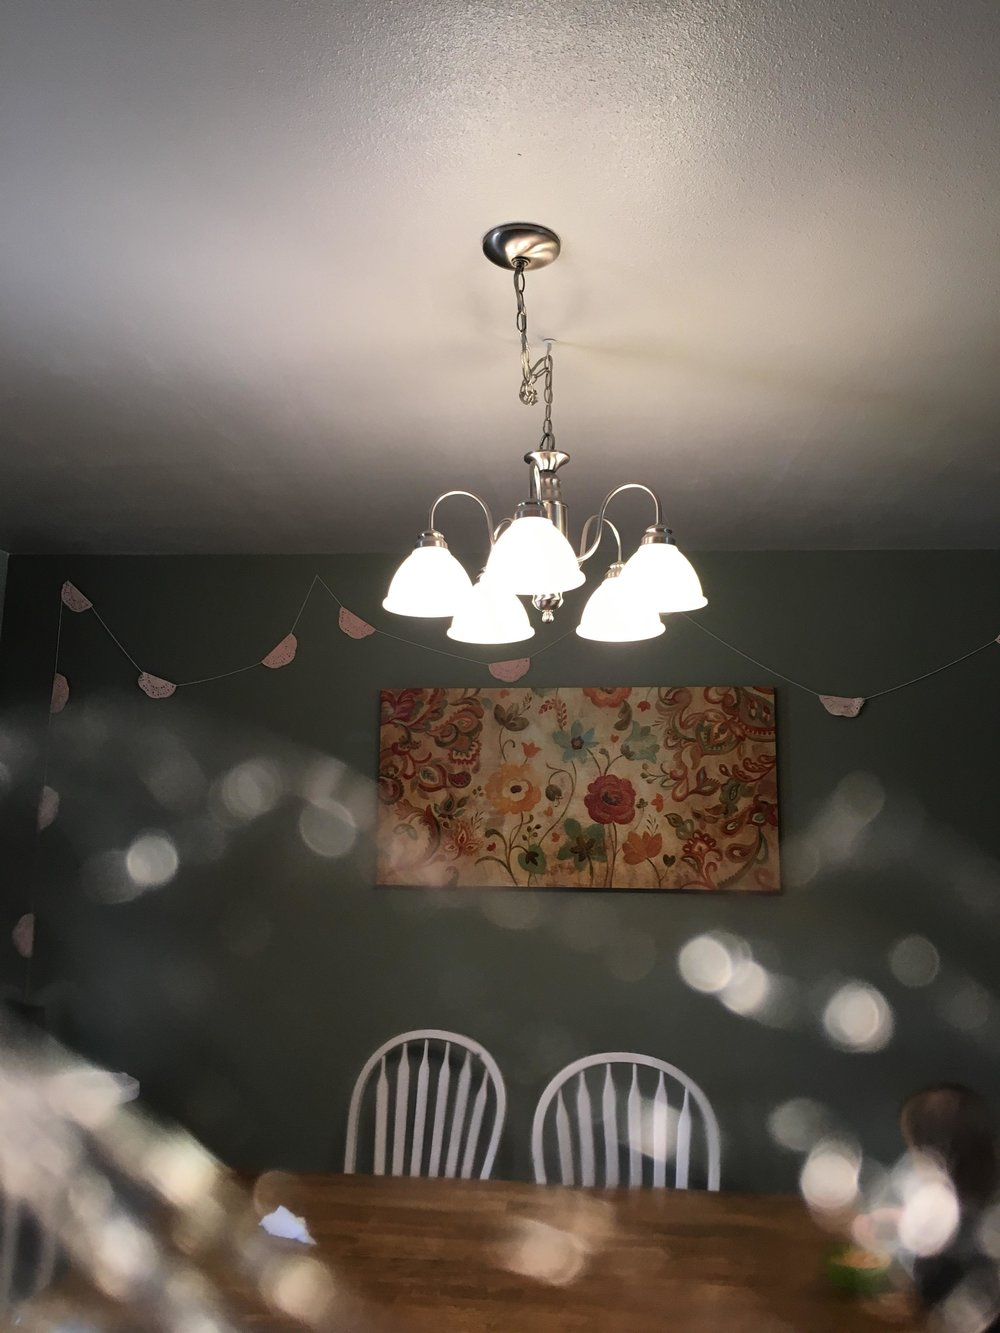 In this picture of our dining room chandelier I placed some saran wrap in front of the camera to add some light effect at the bottom.